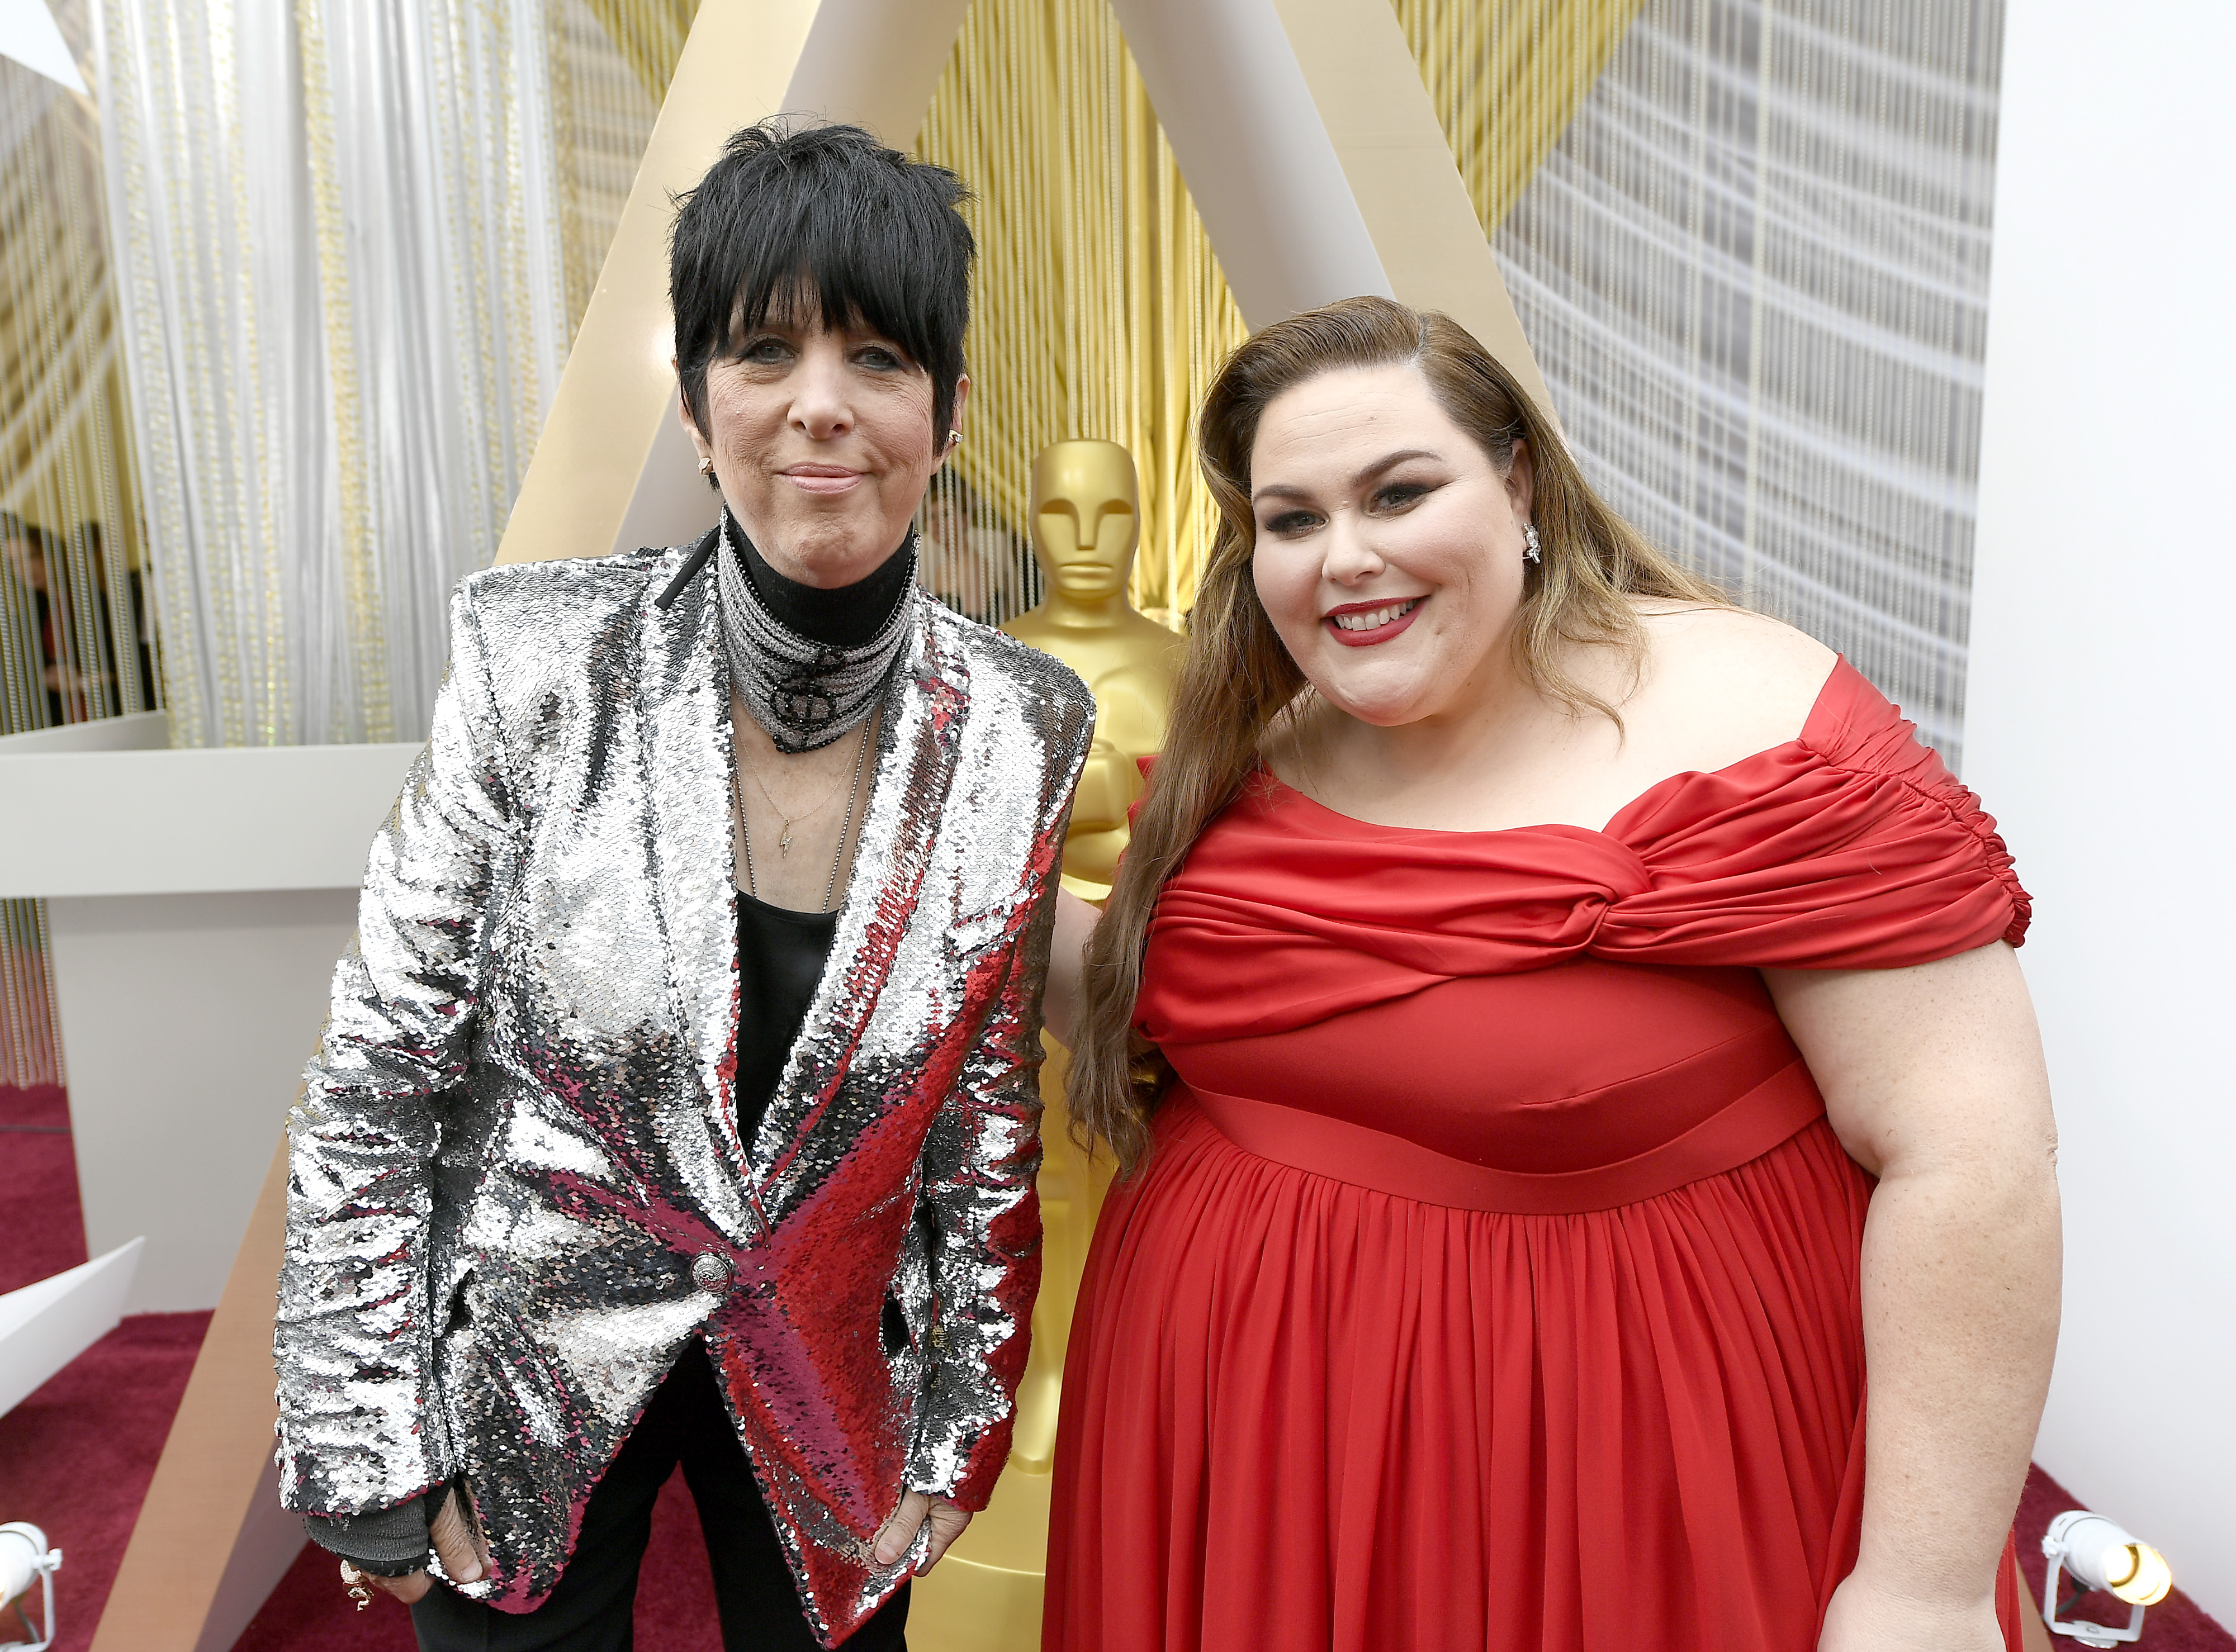 HOLLYWOOD, CALIFORNIA - FEBRUARY 09: Diane Warren and Chrissy Metz attends the 92nd Annual Academy Awards at Hollywood and Highland on February 09, 2020 in Hollywood, California. (Photo by Kevork Djansezian/Getty Images)